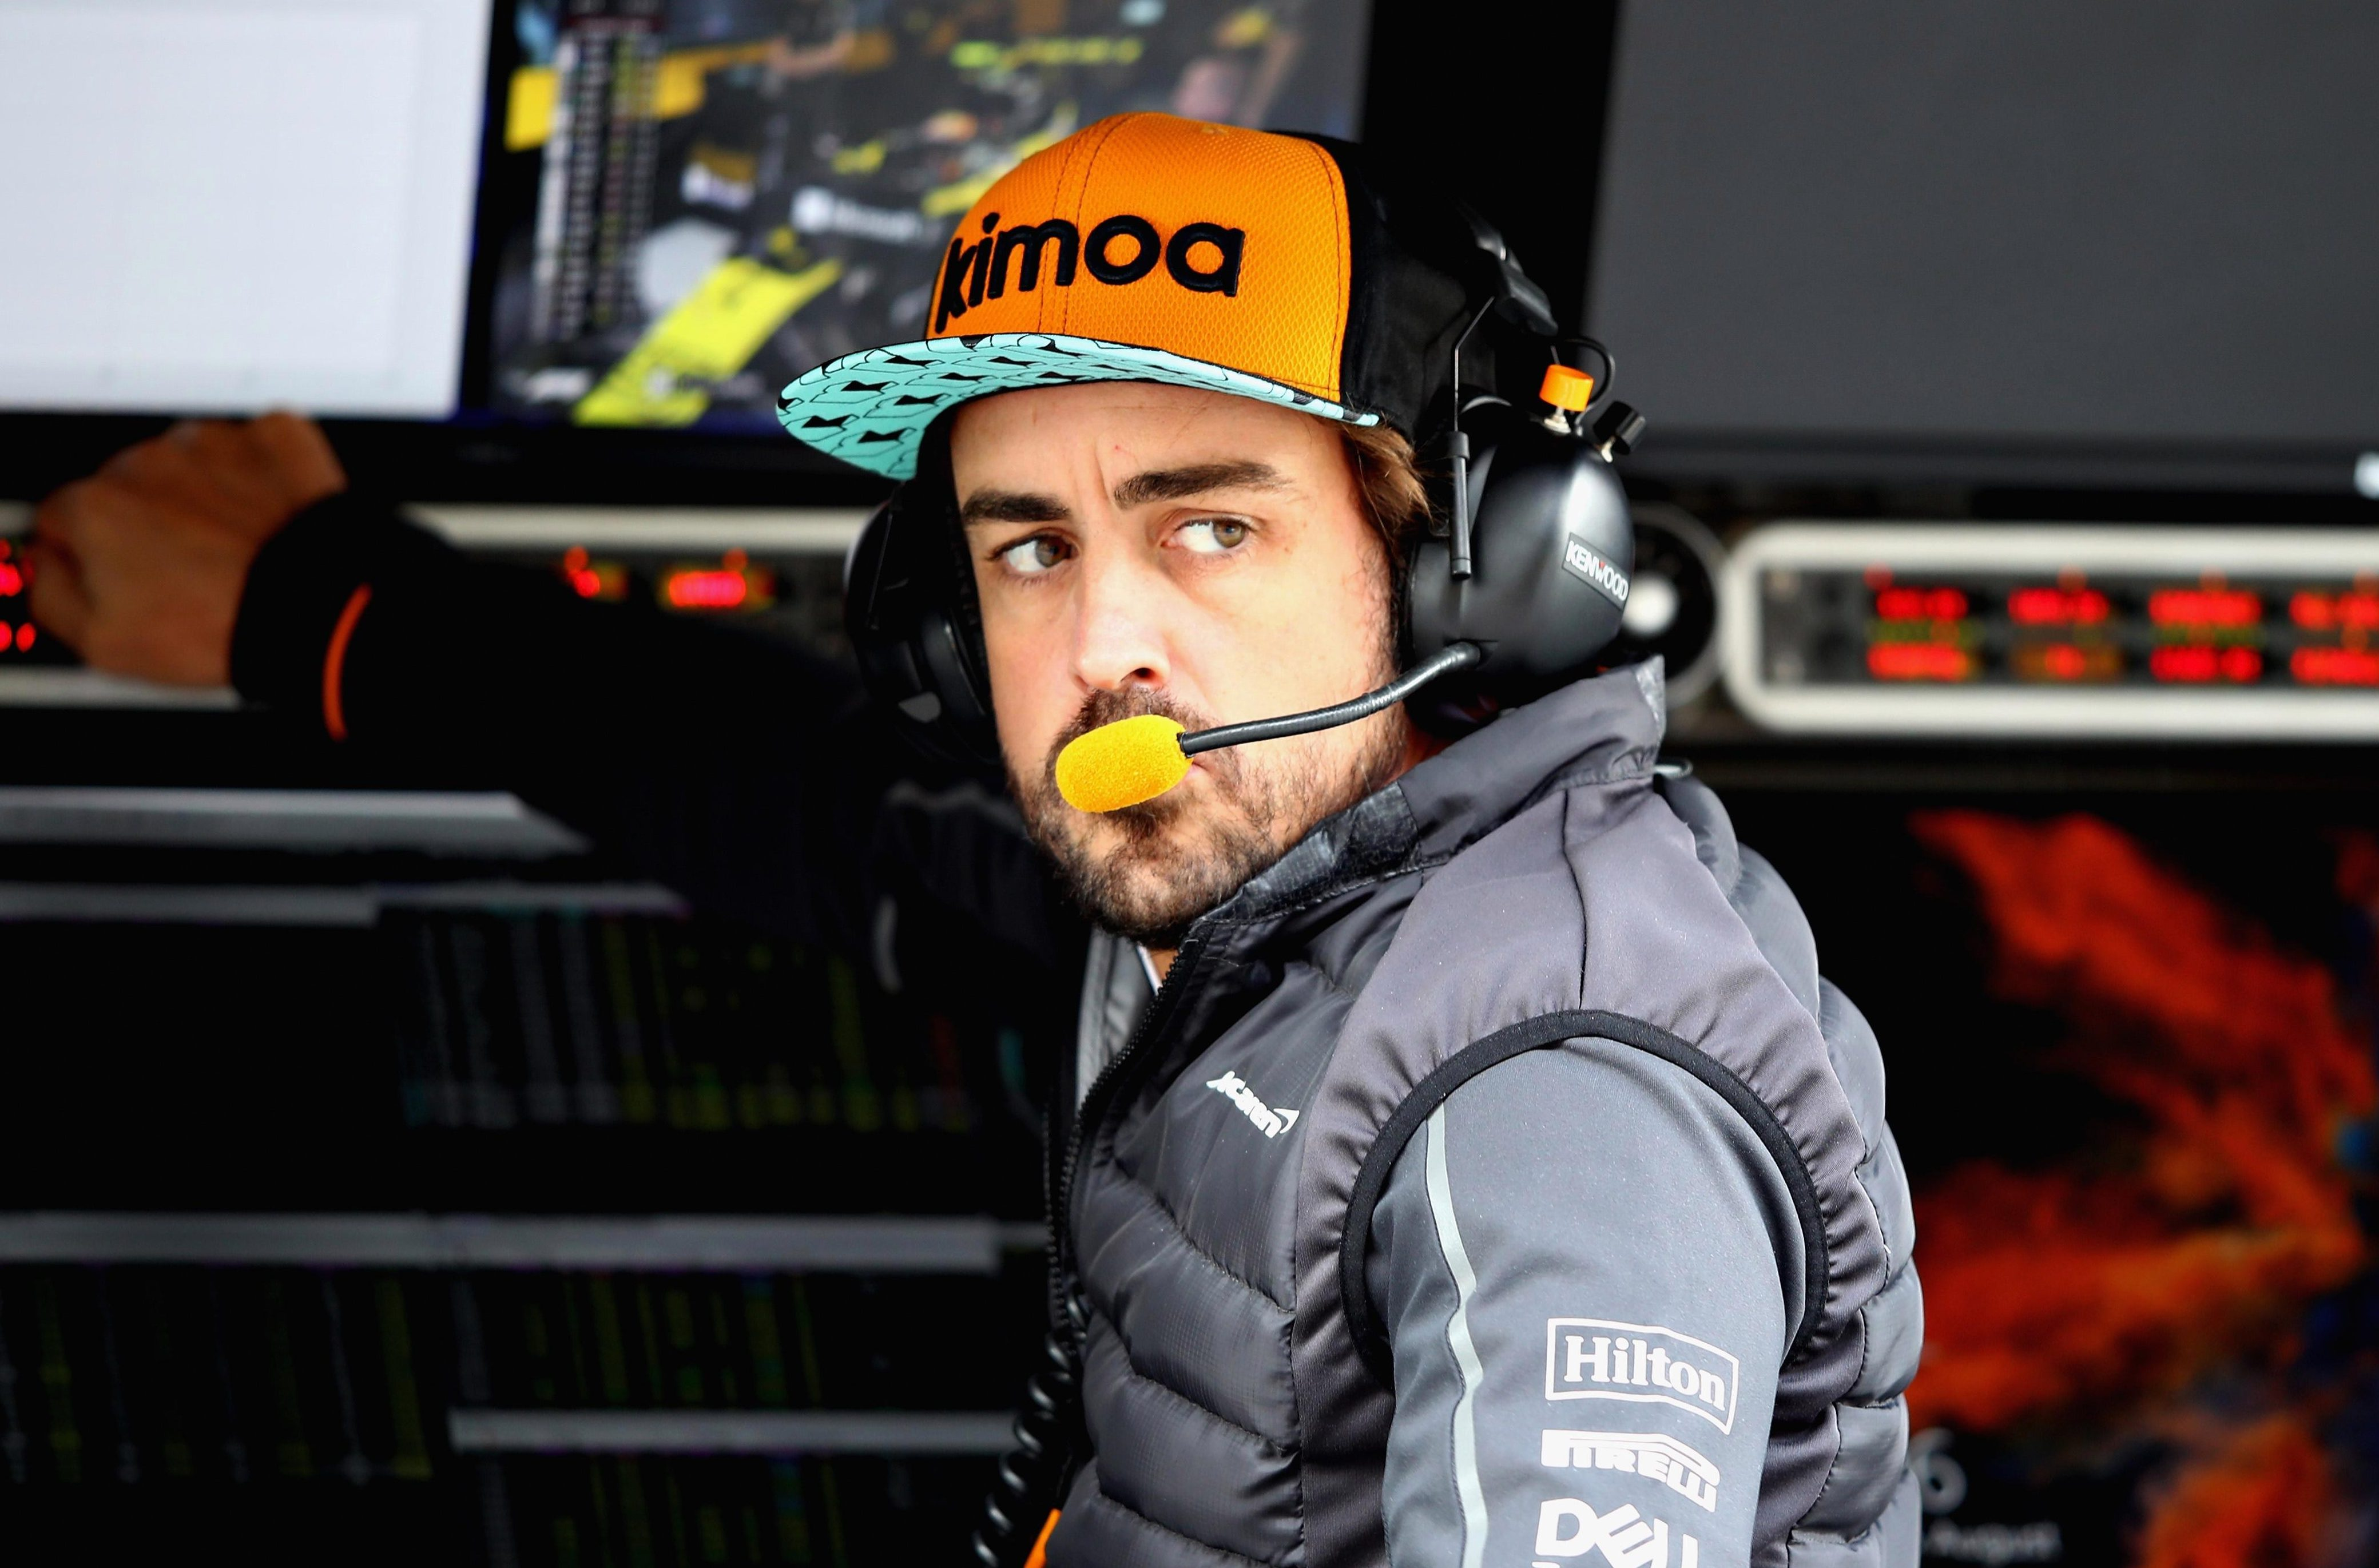 Fernando Alonso has hit back at Red Bull, claiming they tried to sign him for 2019